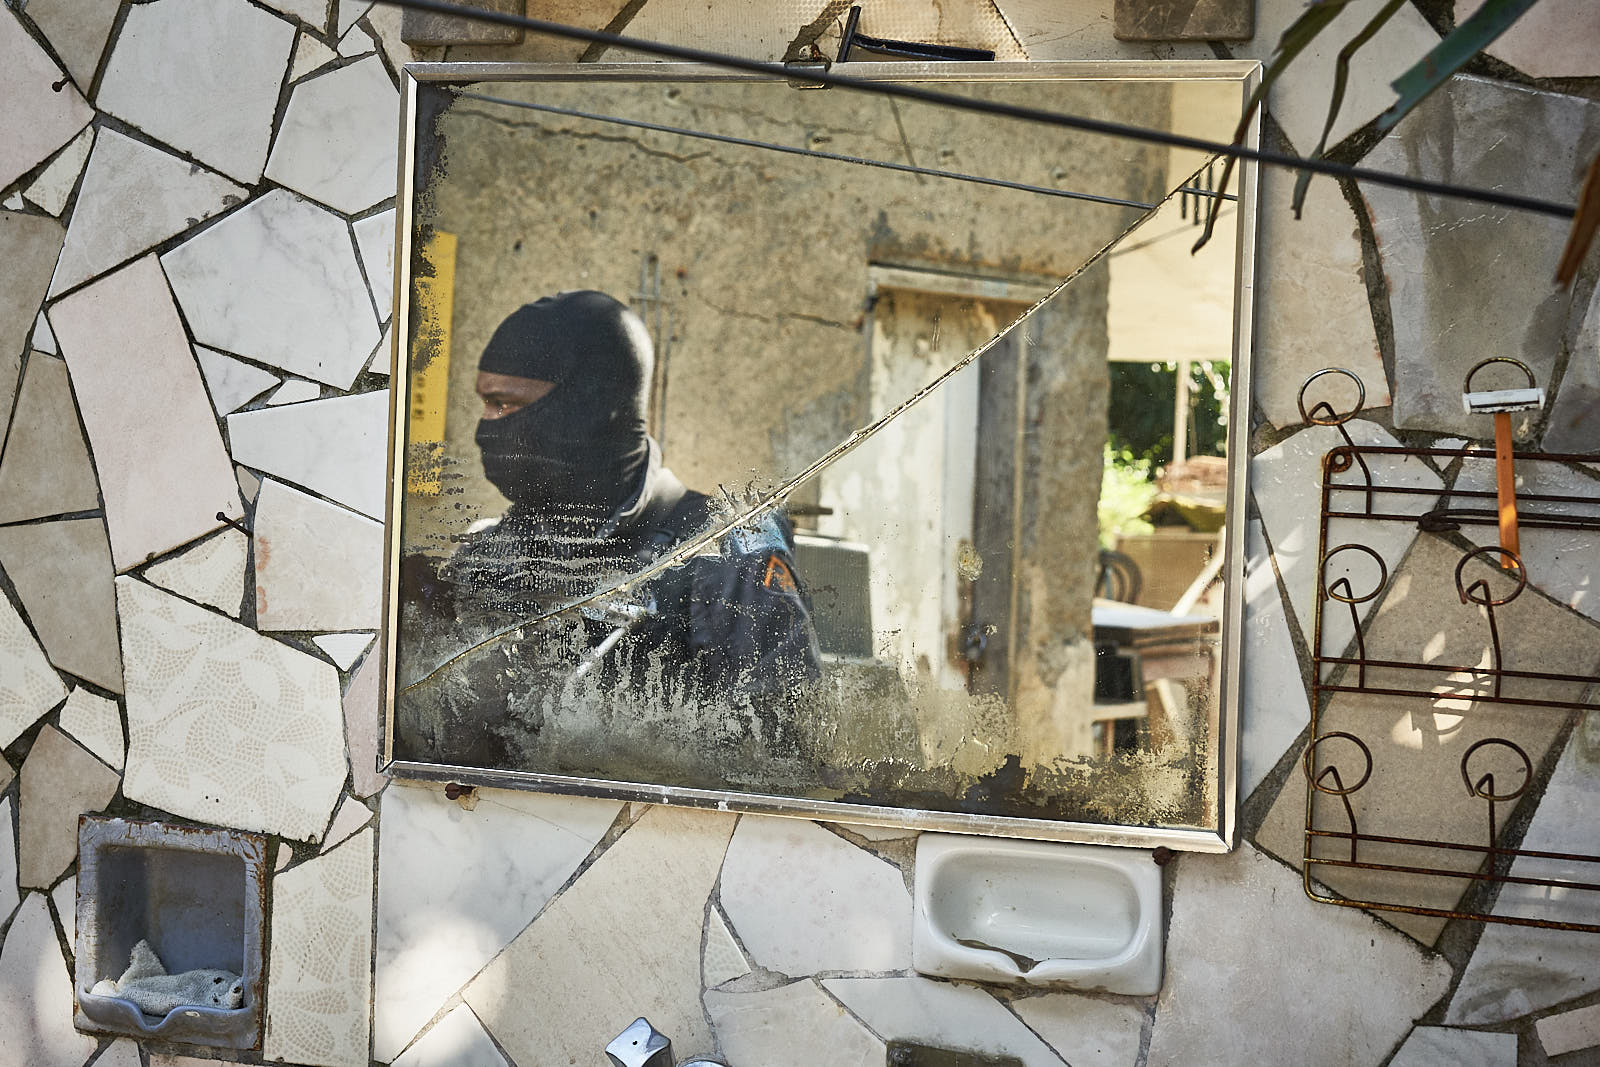 A broken mirror reflects a masked soldier from Rio's Military police during an operation in Morro da Babilônia, a favela located next to Copacabana beach. Many police choose to work masked to minimize the threat of being recognized when off duty. (Photo C.H. Gardiner)